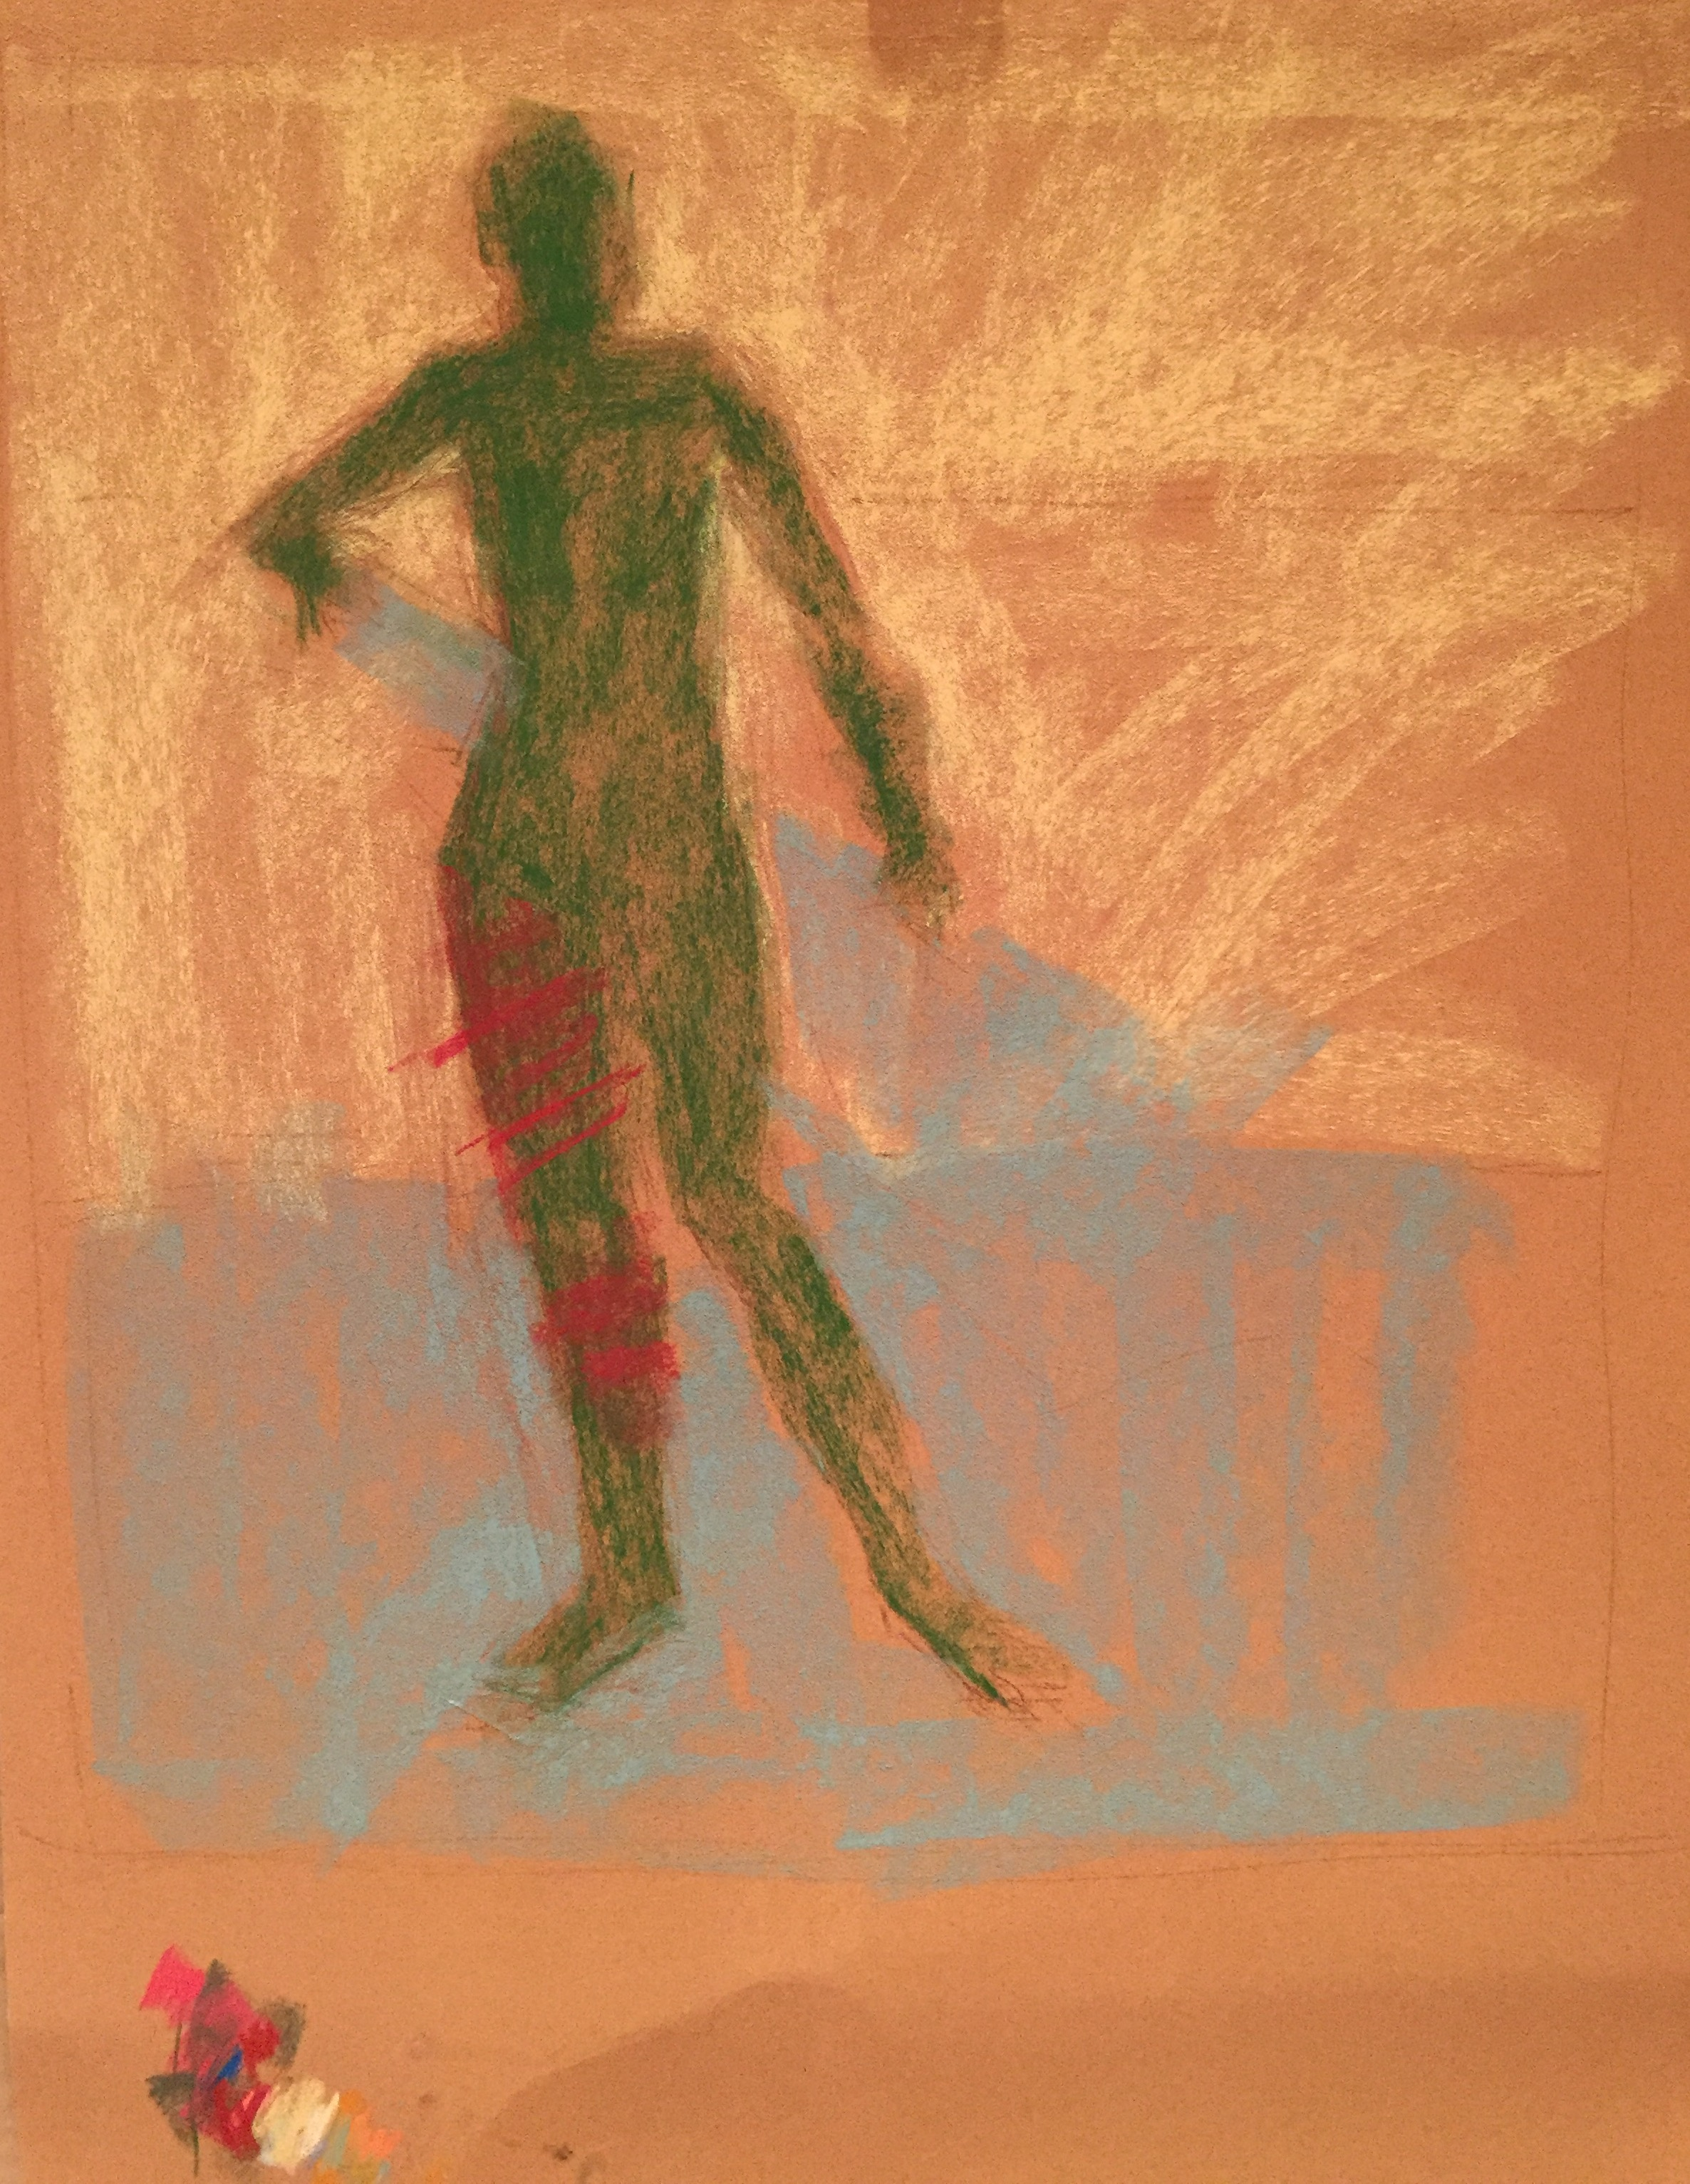 Demo with Sennelier pastels: Value areas blocked in - dark of silhouetted figure, middle value of lower area of sand, and light area of the sea.